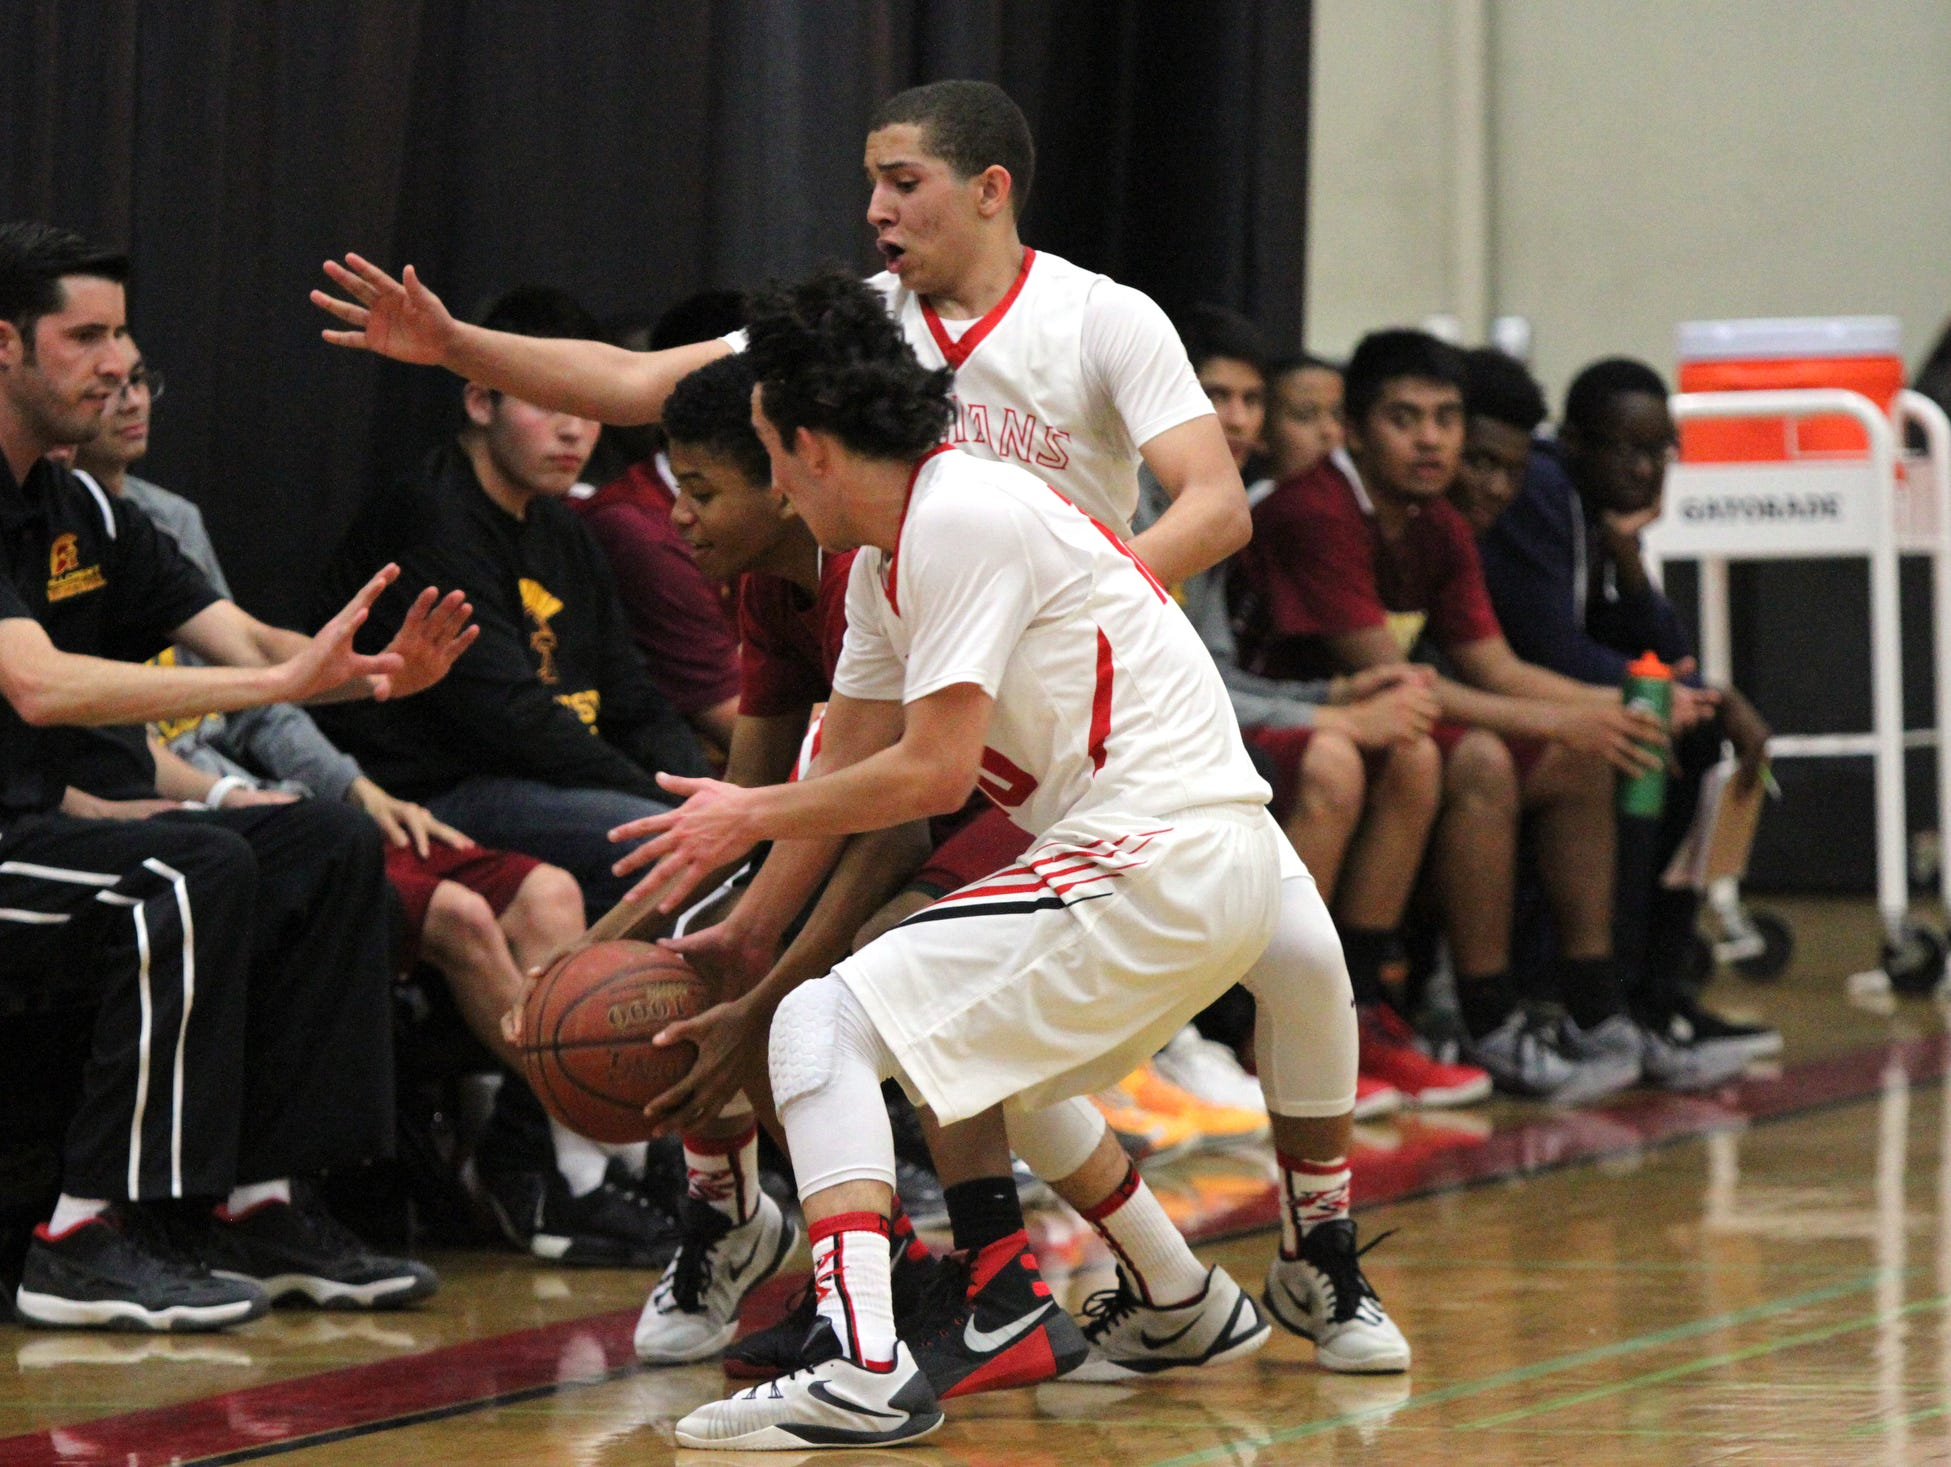 Palm Springs' players put the pressure on Hillcrest during the playoff game in Palm Springs on Wednesday.